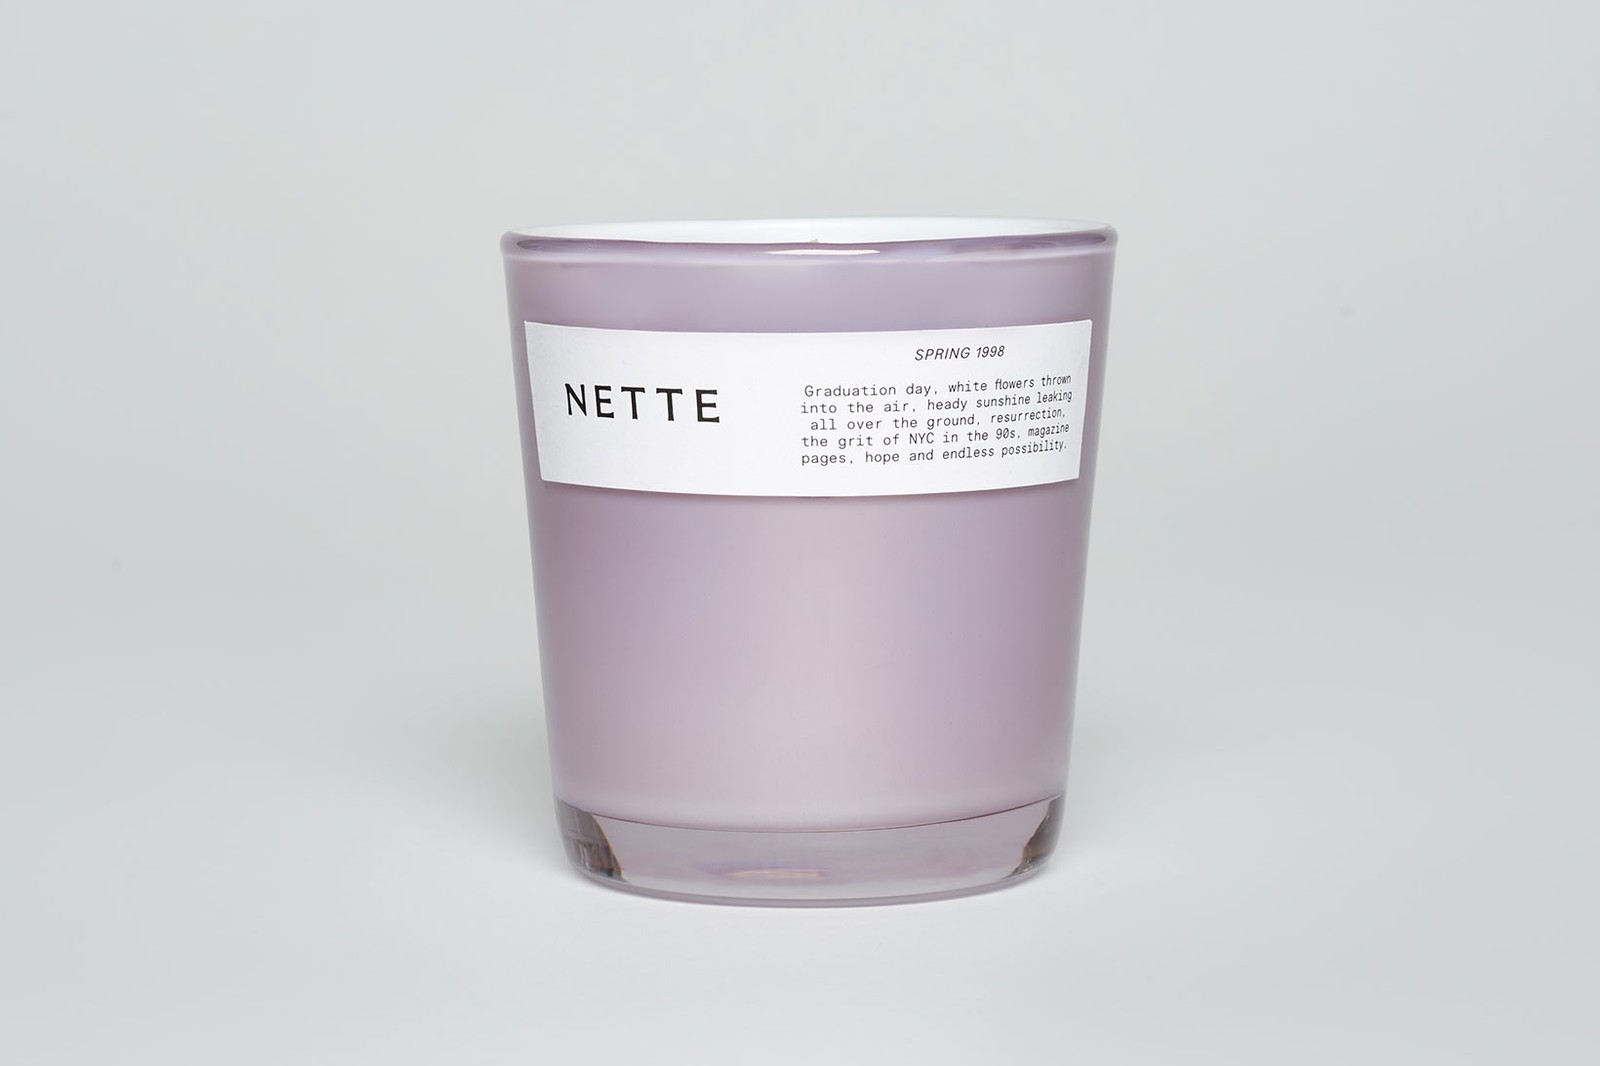 nette candles sustainable eco-friendly home scents take good care set lighters scrunchies launch